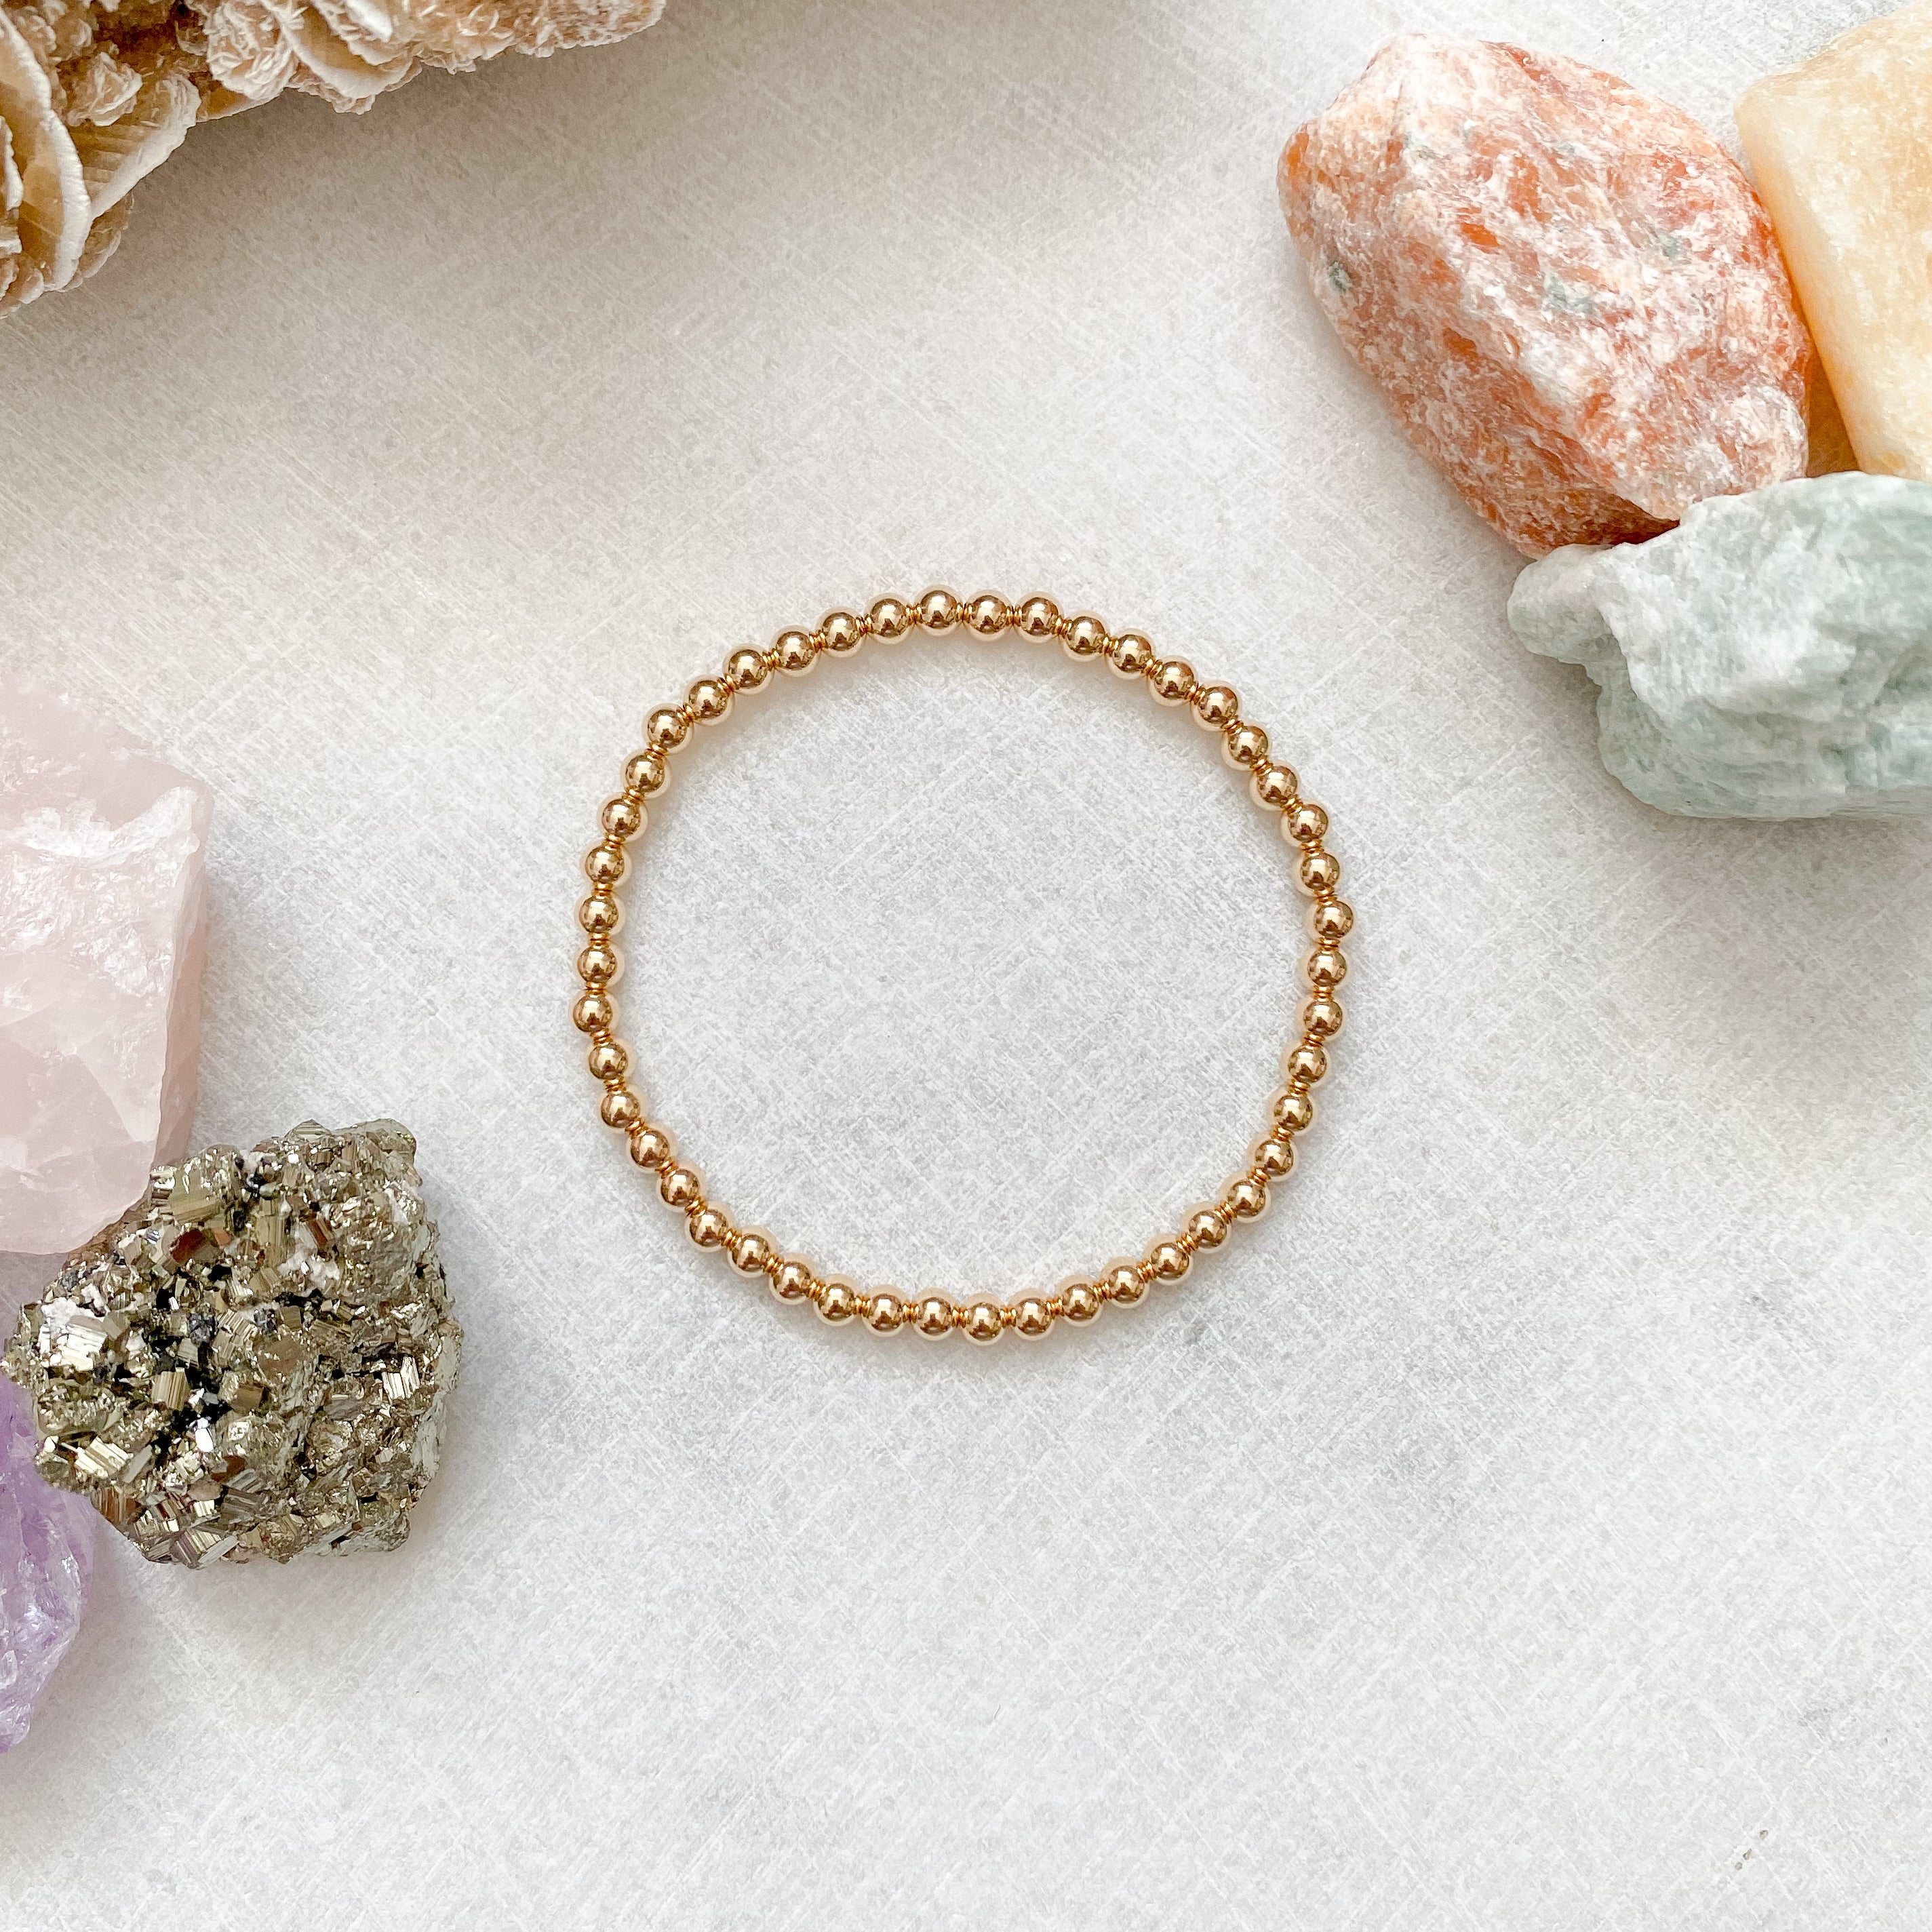 Luxe Stacker Bracelet - 14kt Gold Filled, Rose Gold Filled, Sterling Silver